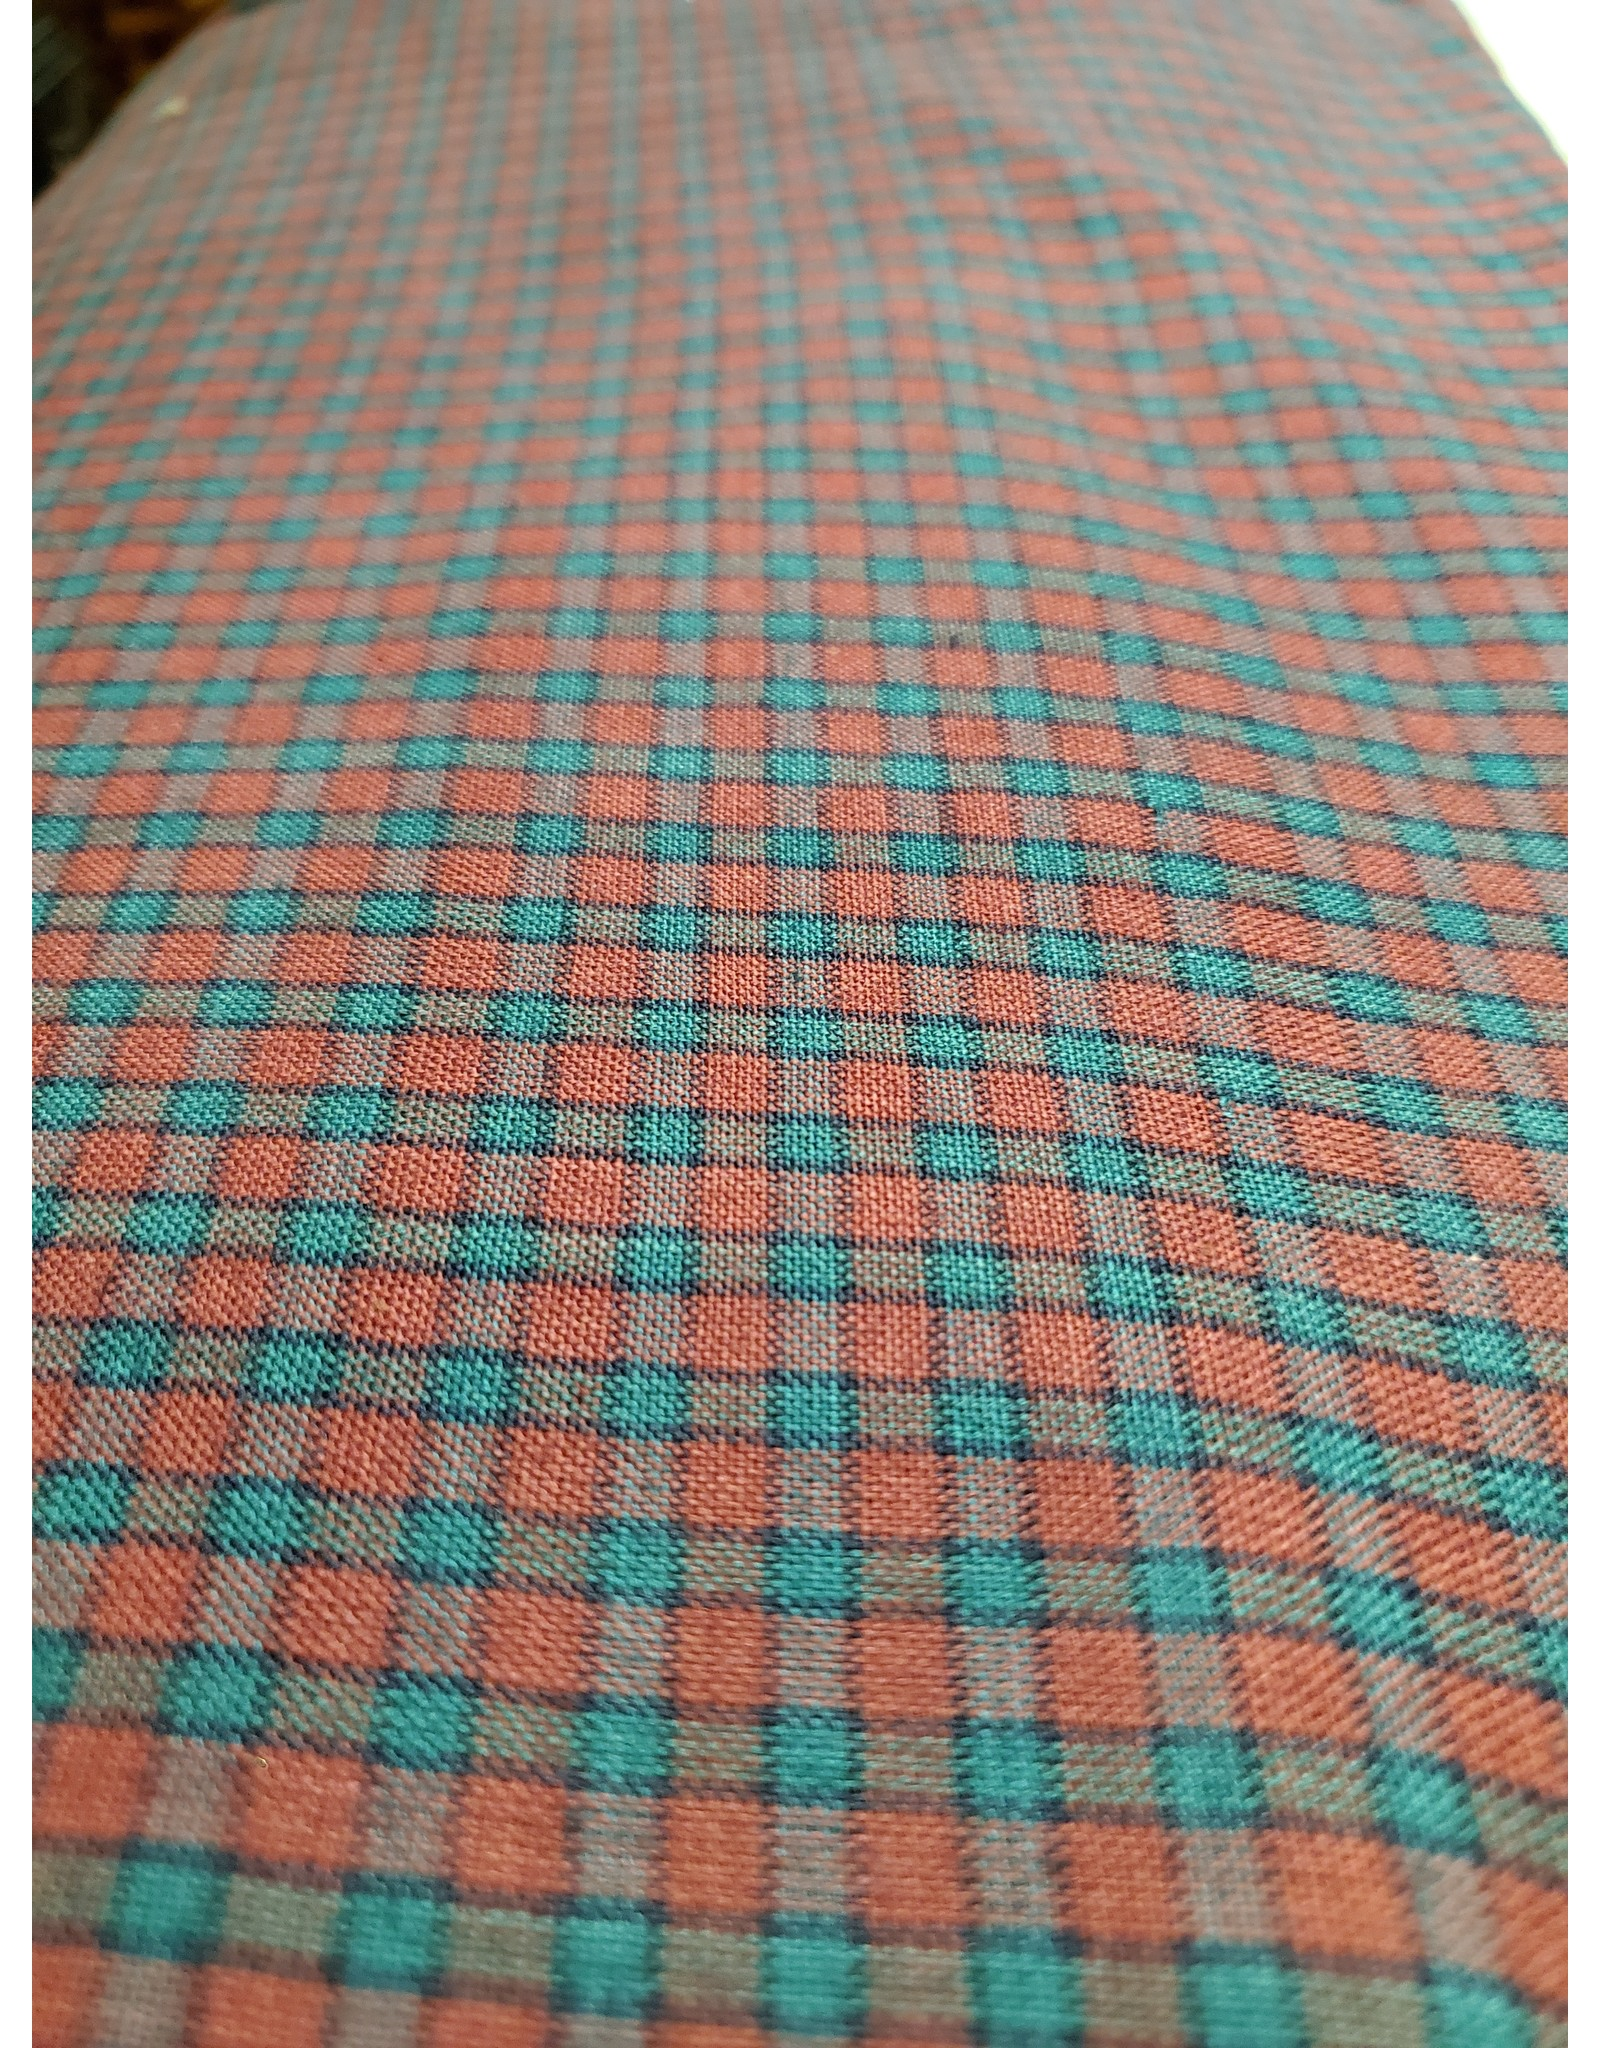 Yd.  Burgundy and Teal Small Check Fabric #3314